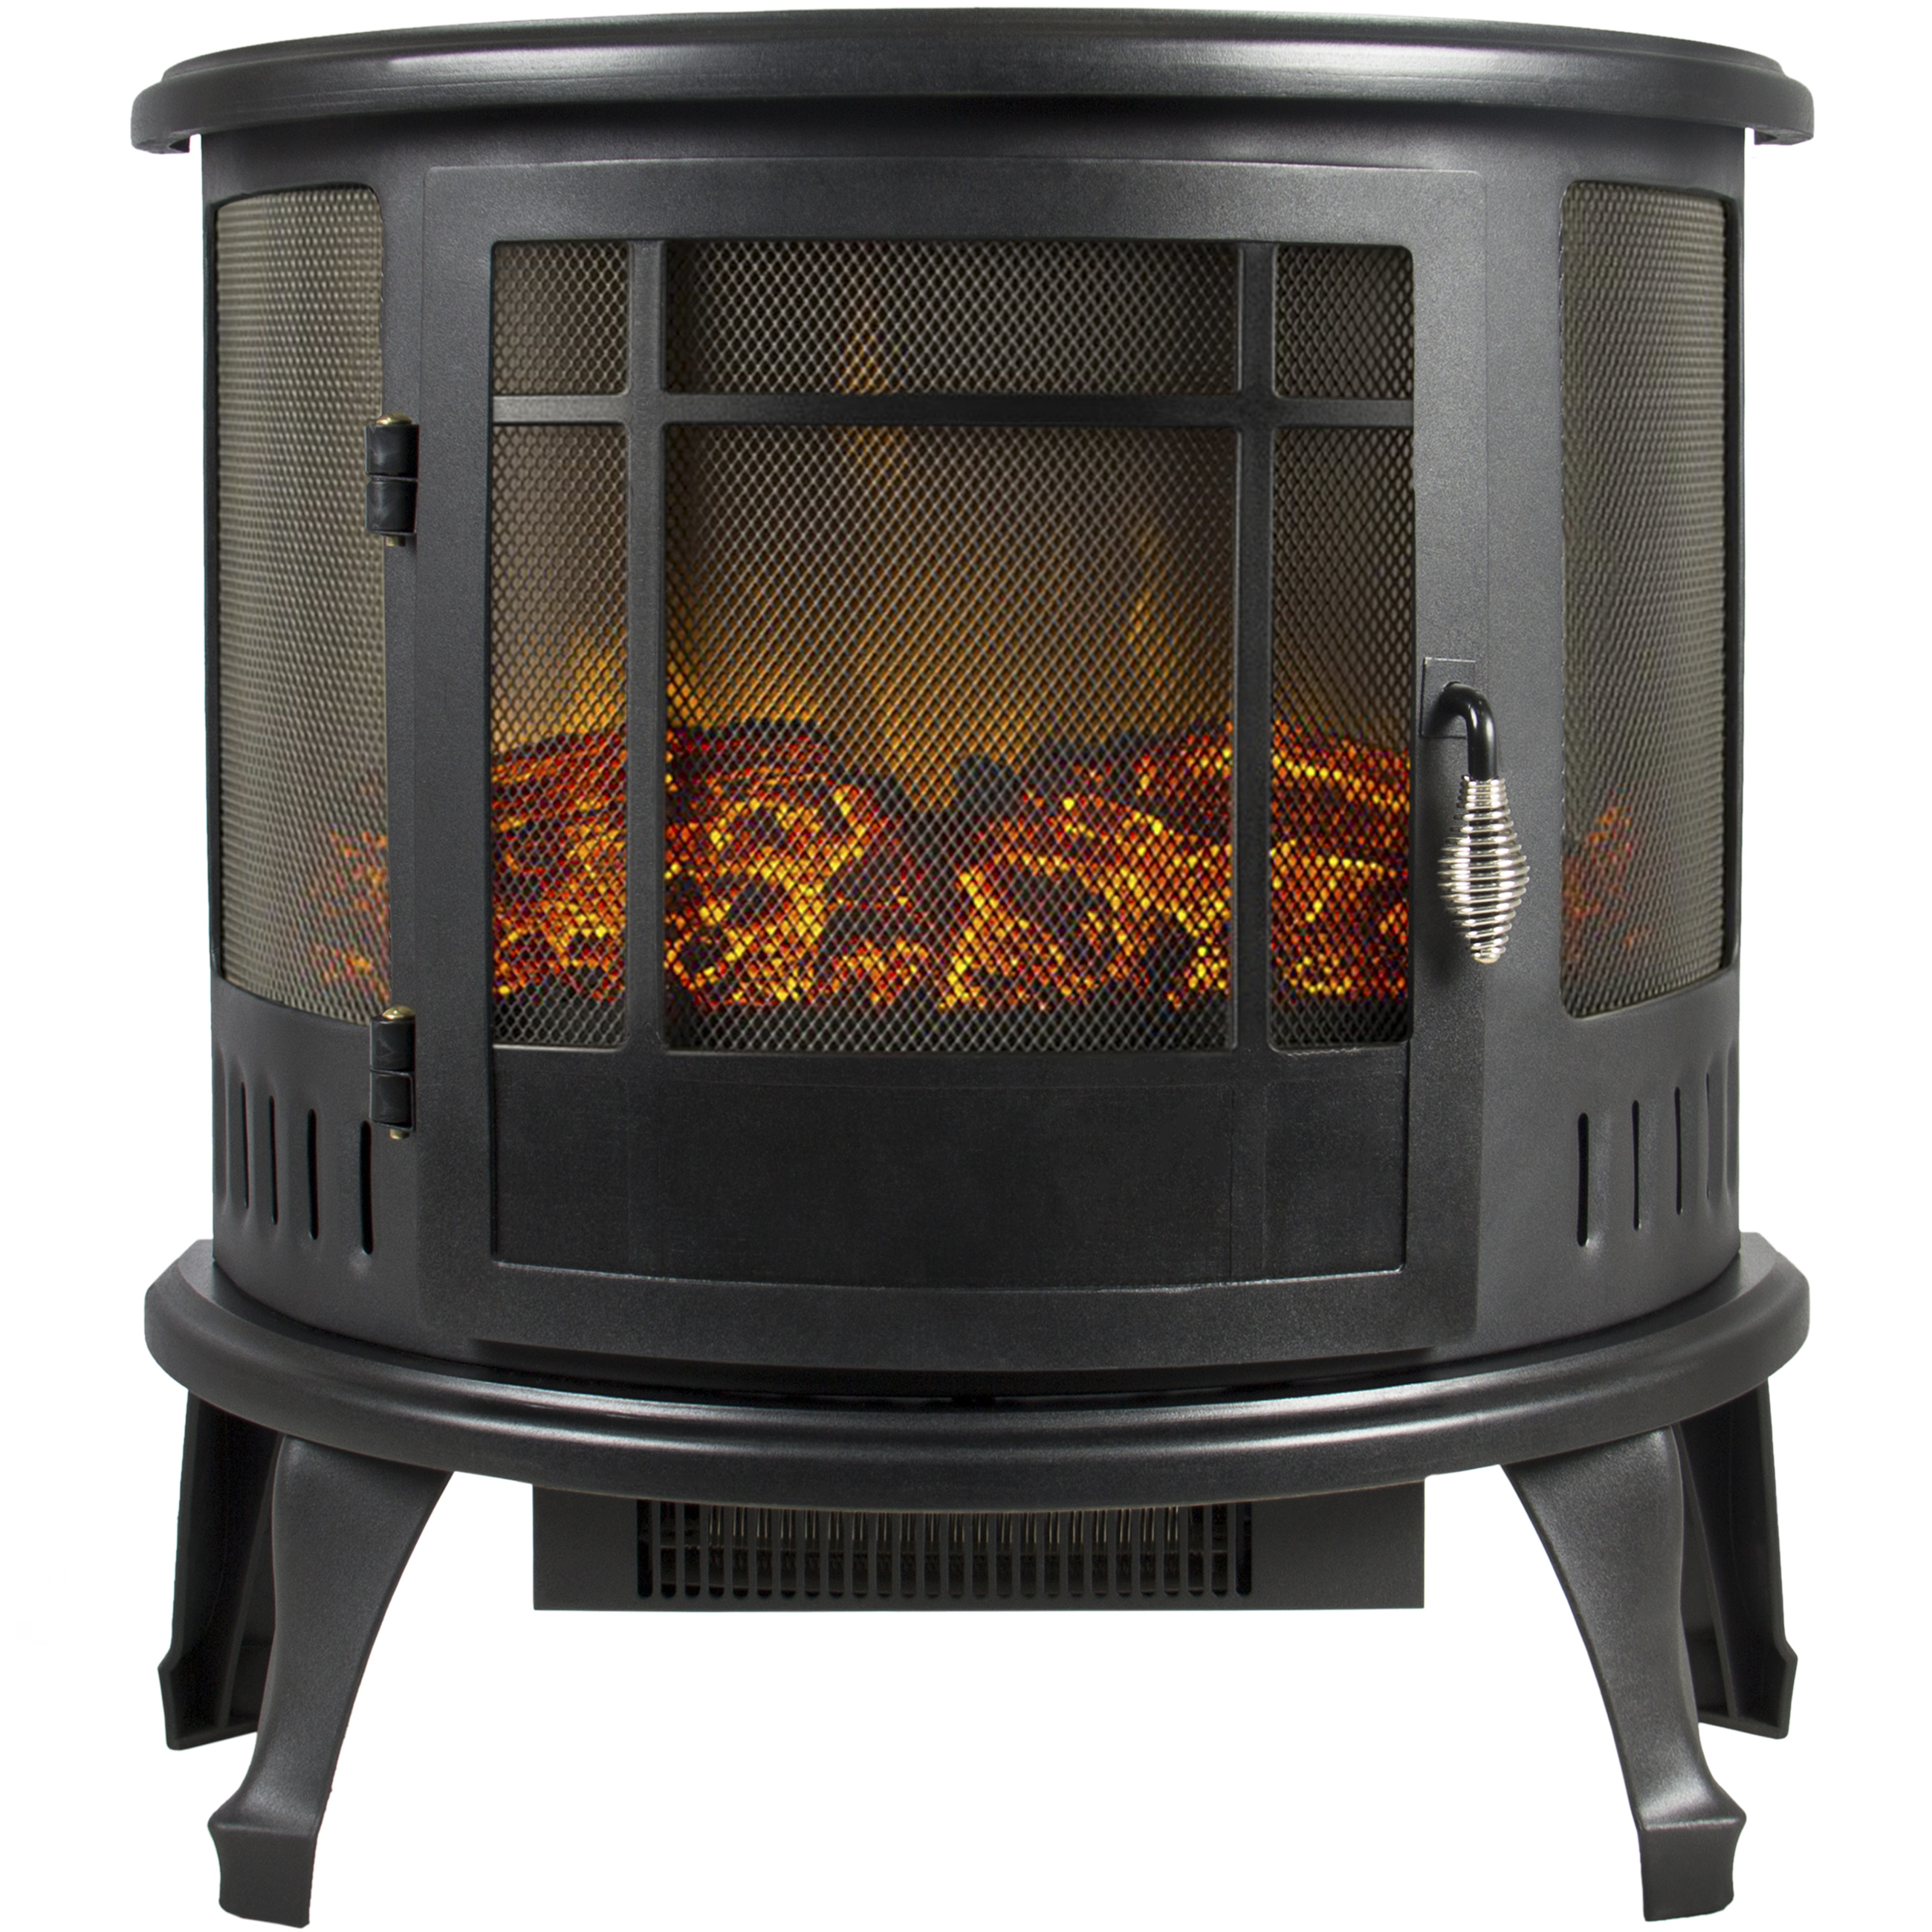 Free Shipping. Buy Portable Electric Fireplace Stove 1500W Space Heater Realistic Flame Perfect Design for Corners at Walmart.com